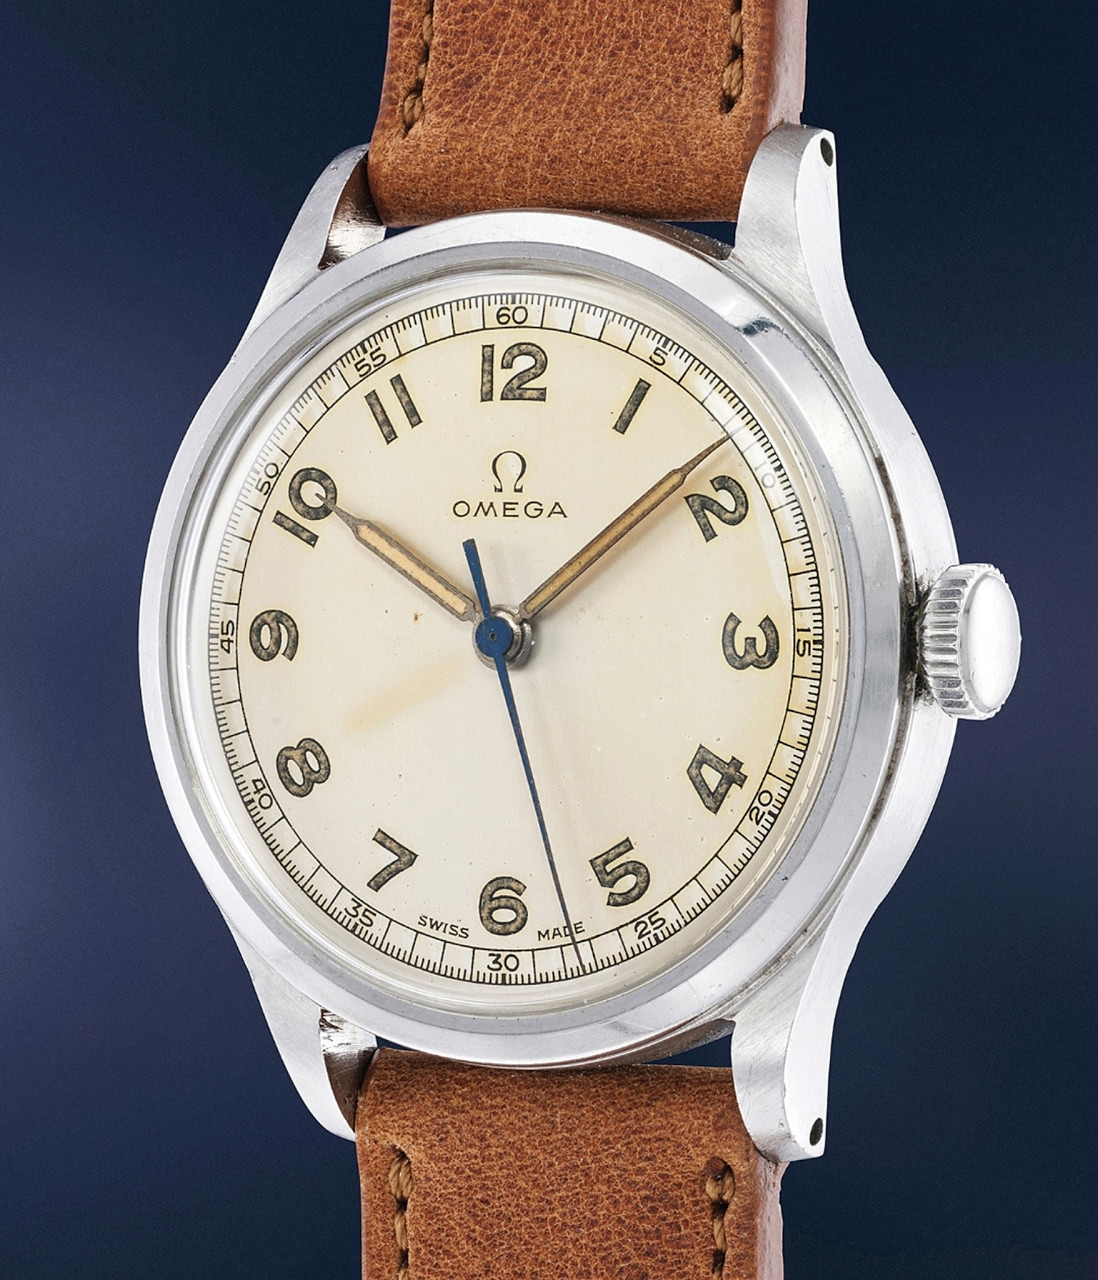 The U.S. Army Omega reference 2179/2 military issue.